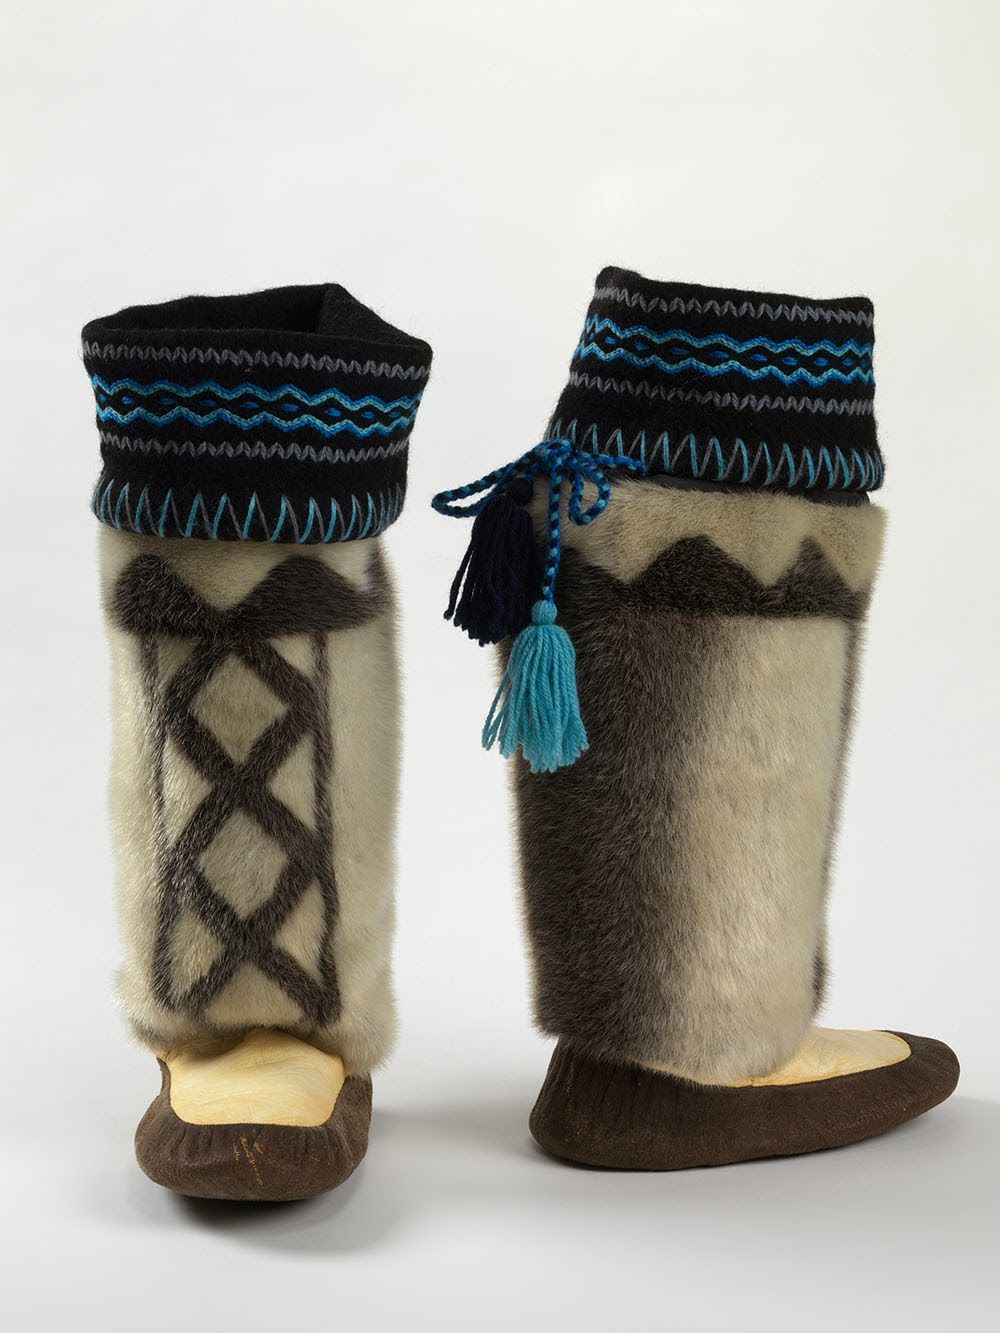 Walking Through Winter | Native american moccasins, Moccasin